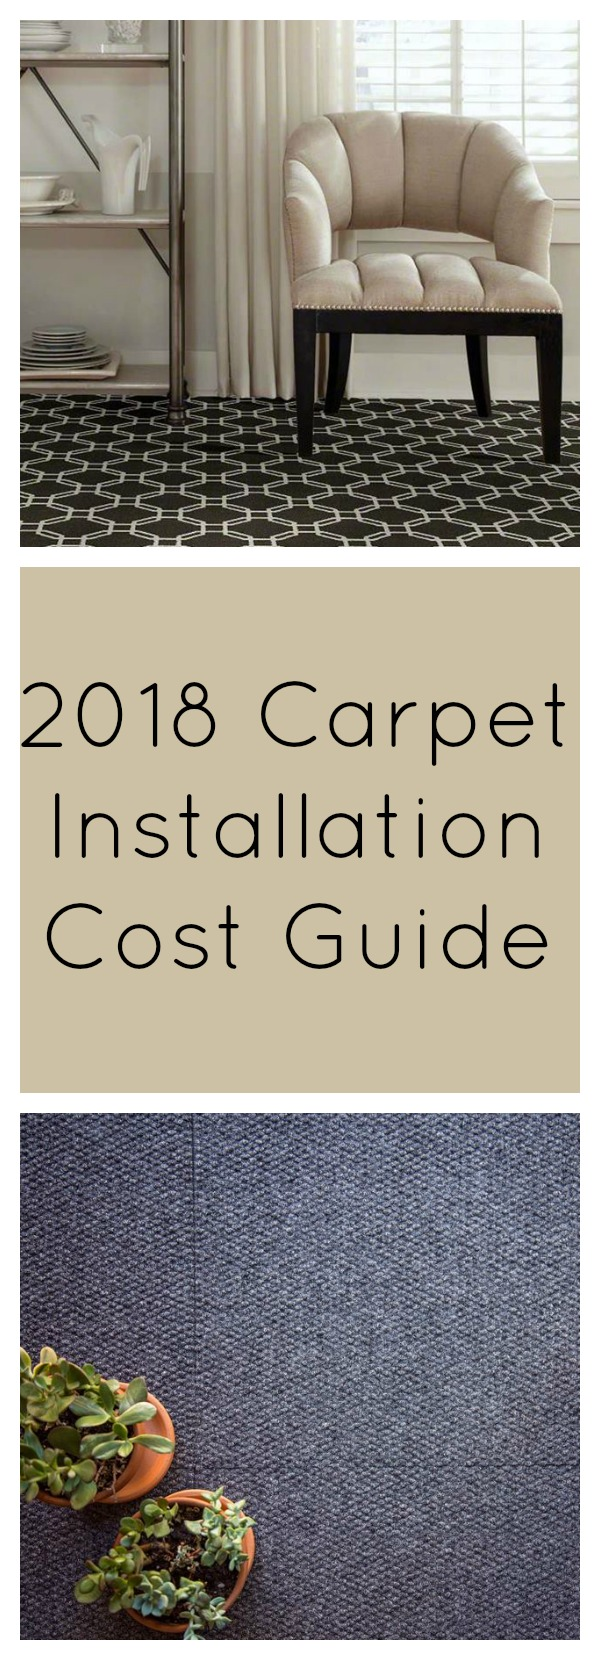 2018 Carpet Installation Cost Guide  Flooringinc Blog